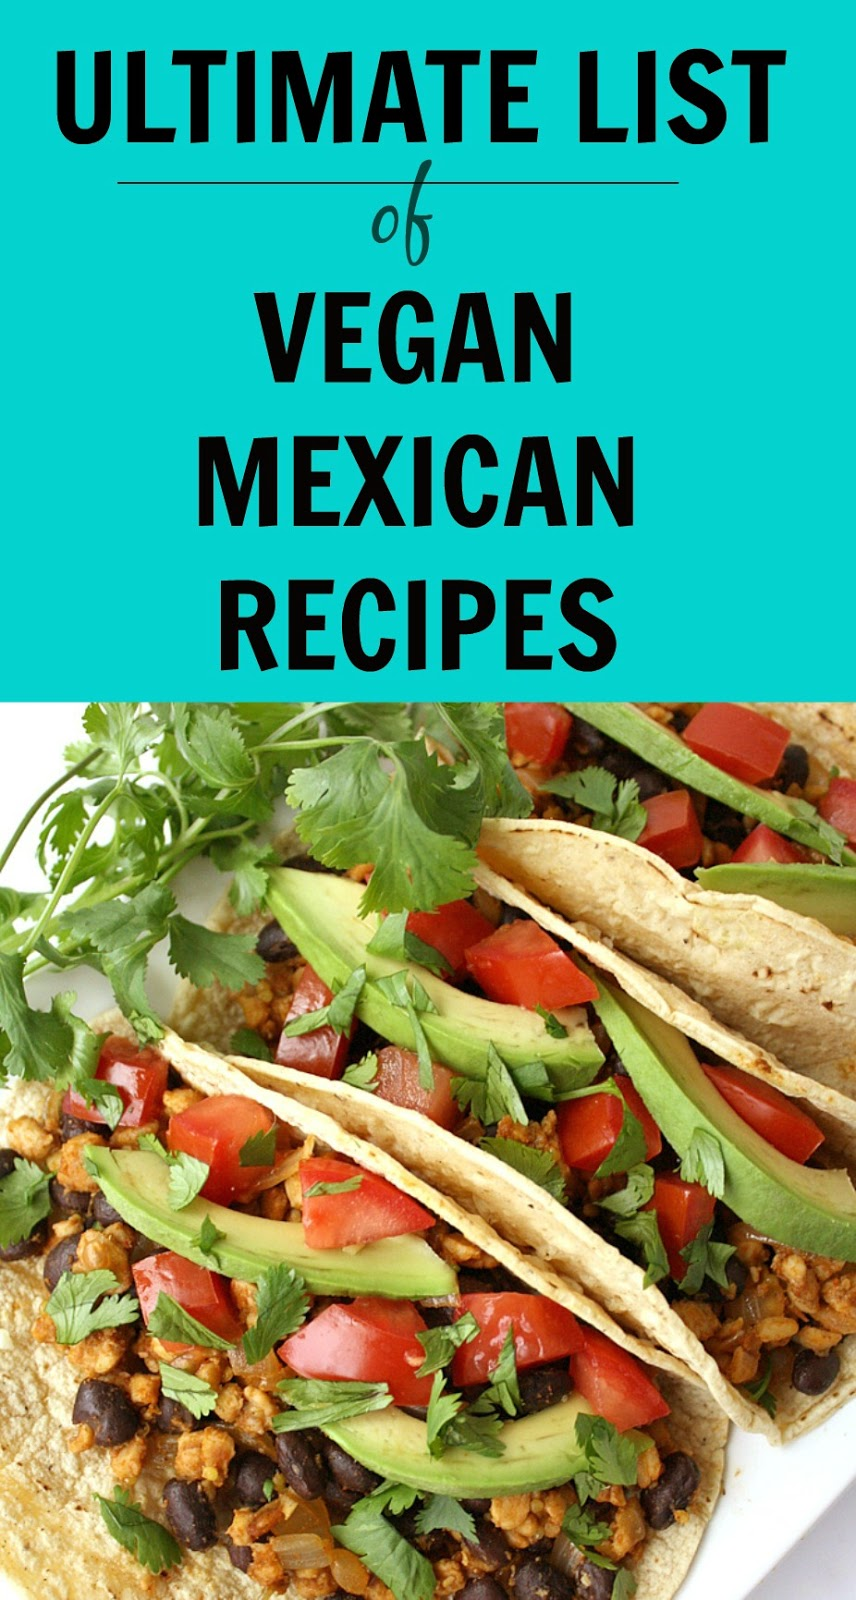 vegan mexican recipes collage with tacos